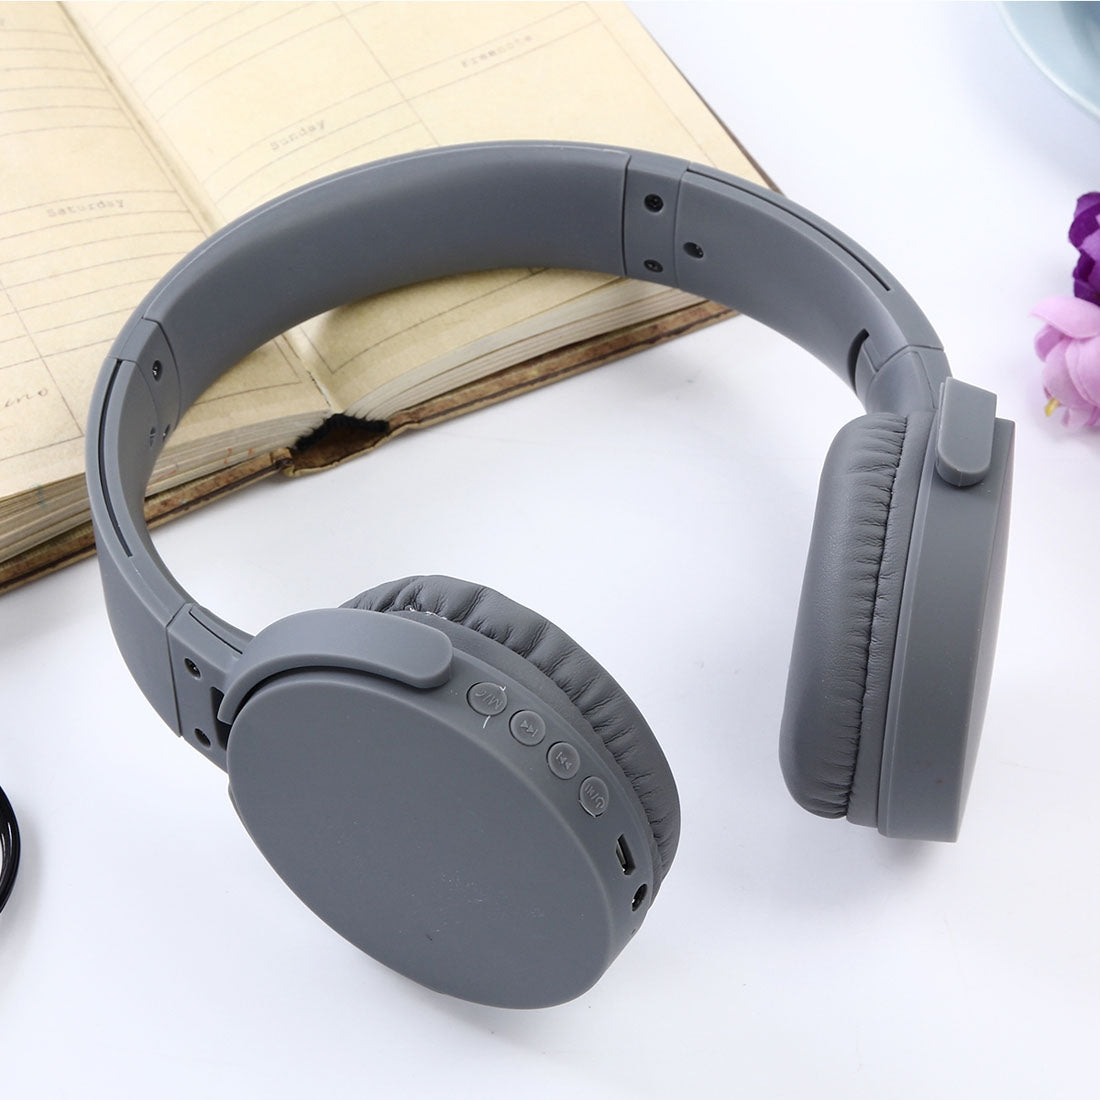 MDR-XB650BT Headband Folding Stereo Wireless Bluetooth Headphone Headset, Support 3.5mm Audio Input & Hands-free Call, For iPhone, iPad, iPod, Samsung, HTC, Xiaomi and other Audio Devices(Grey)